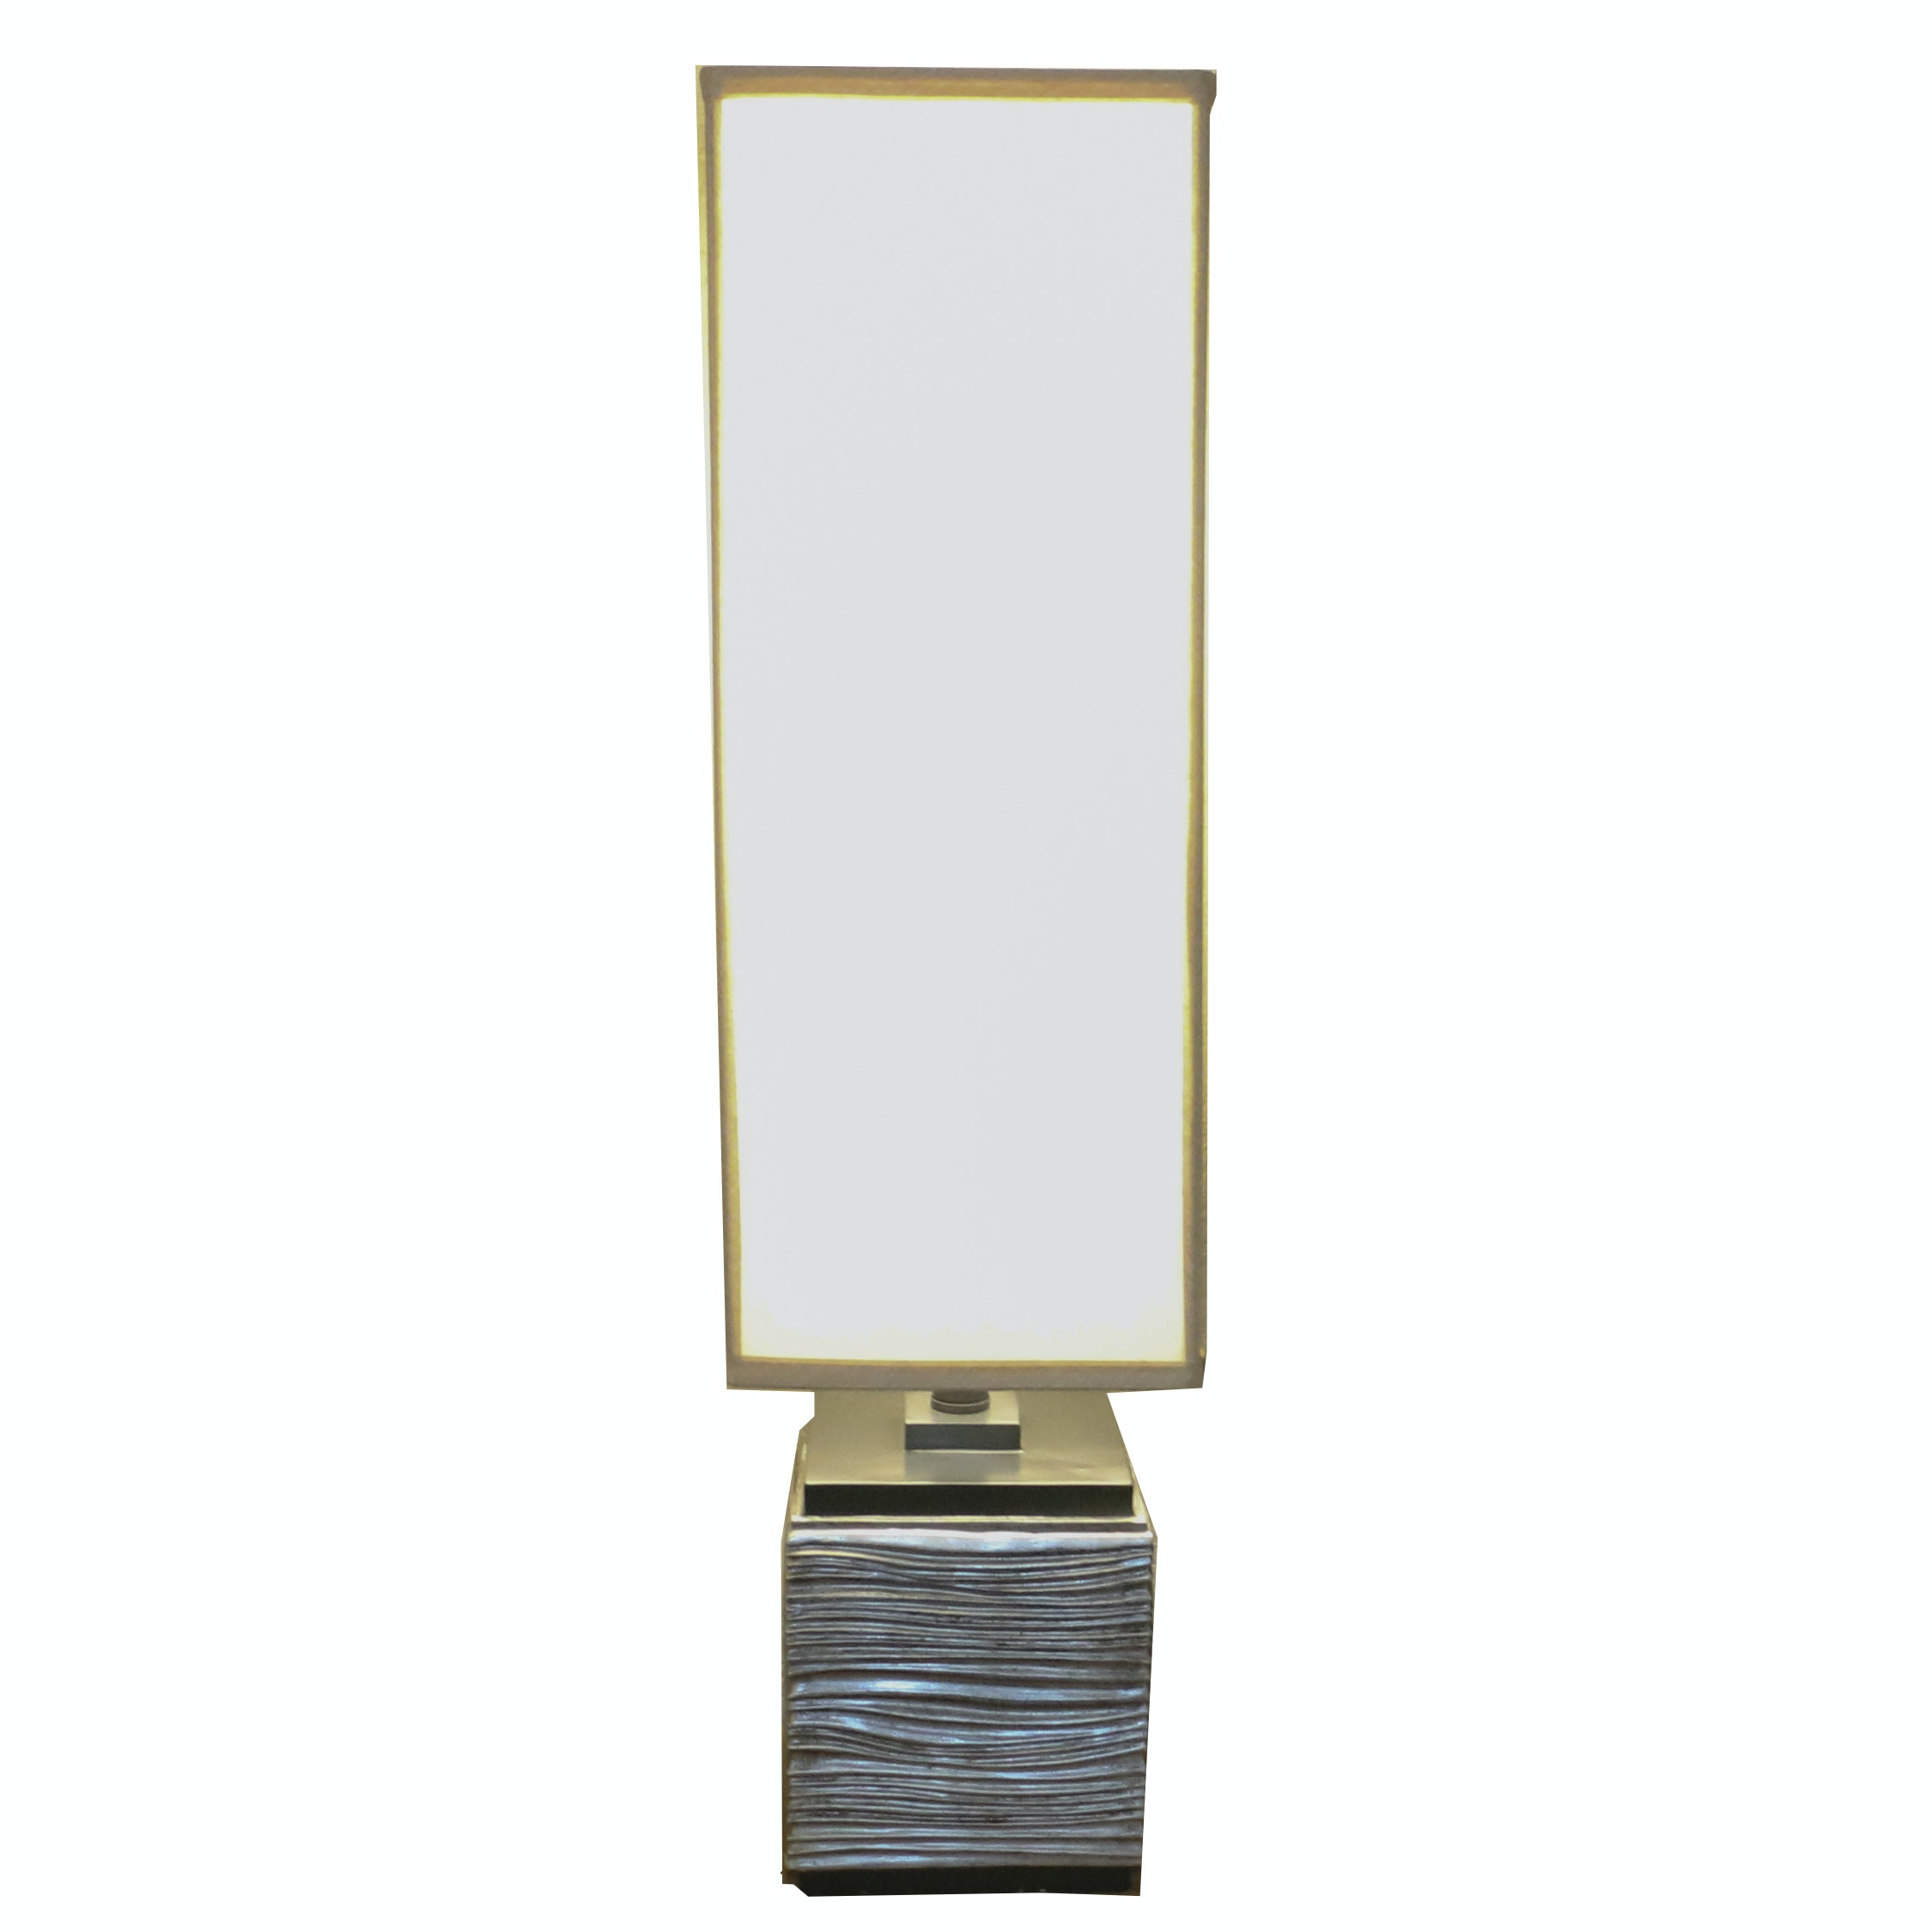 Contemporary Textured Resin Block Table Lamp with Tall Shade